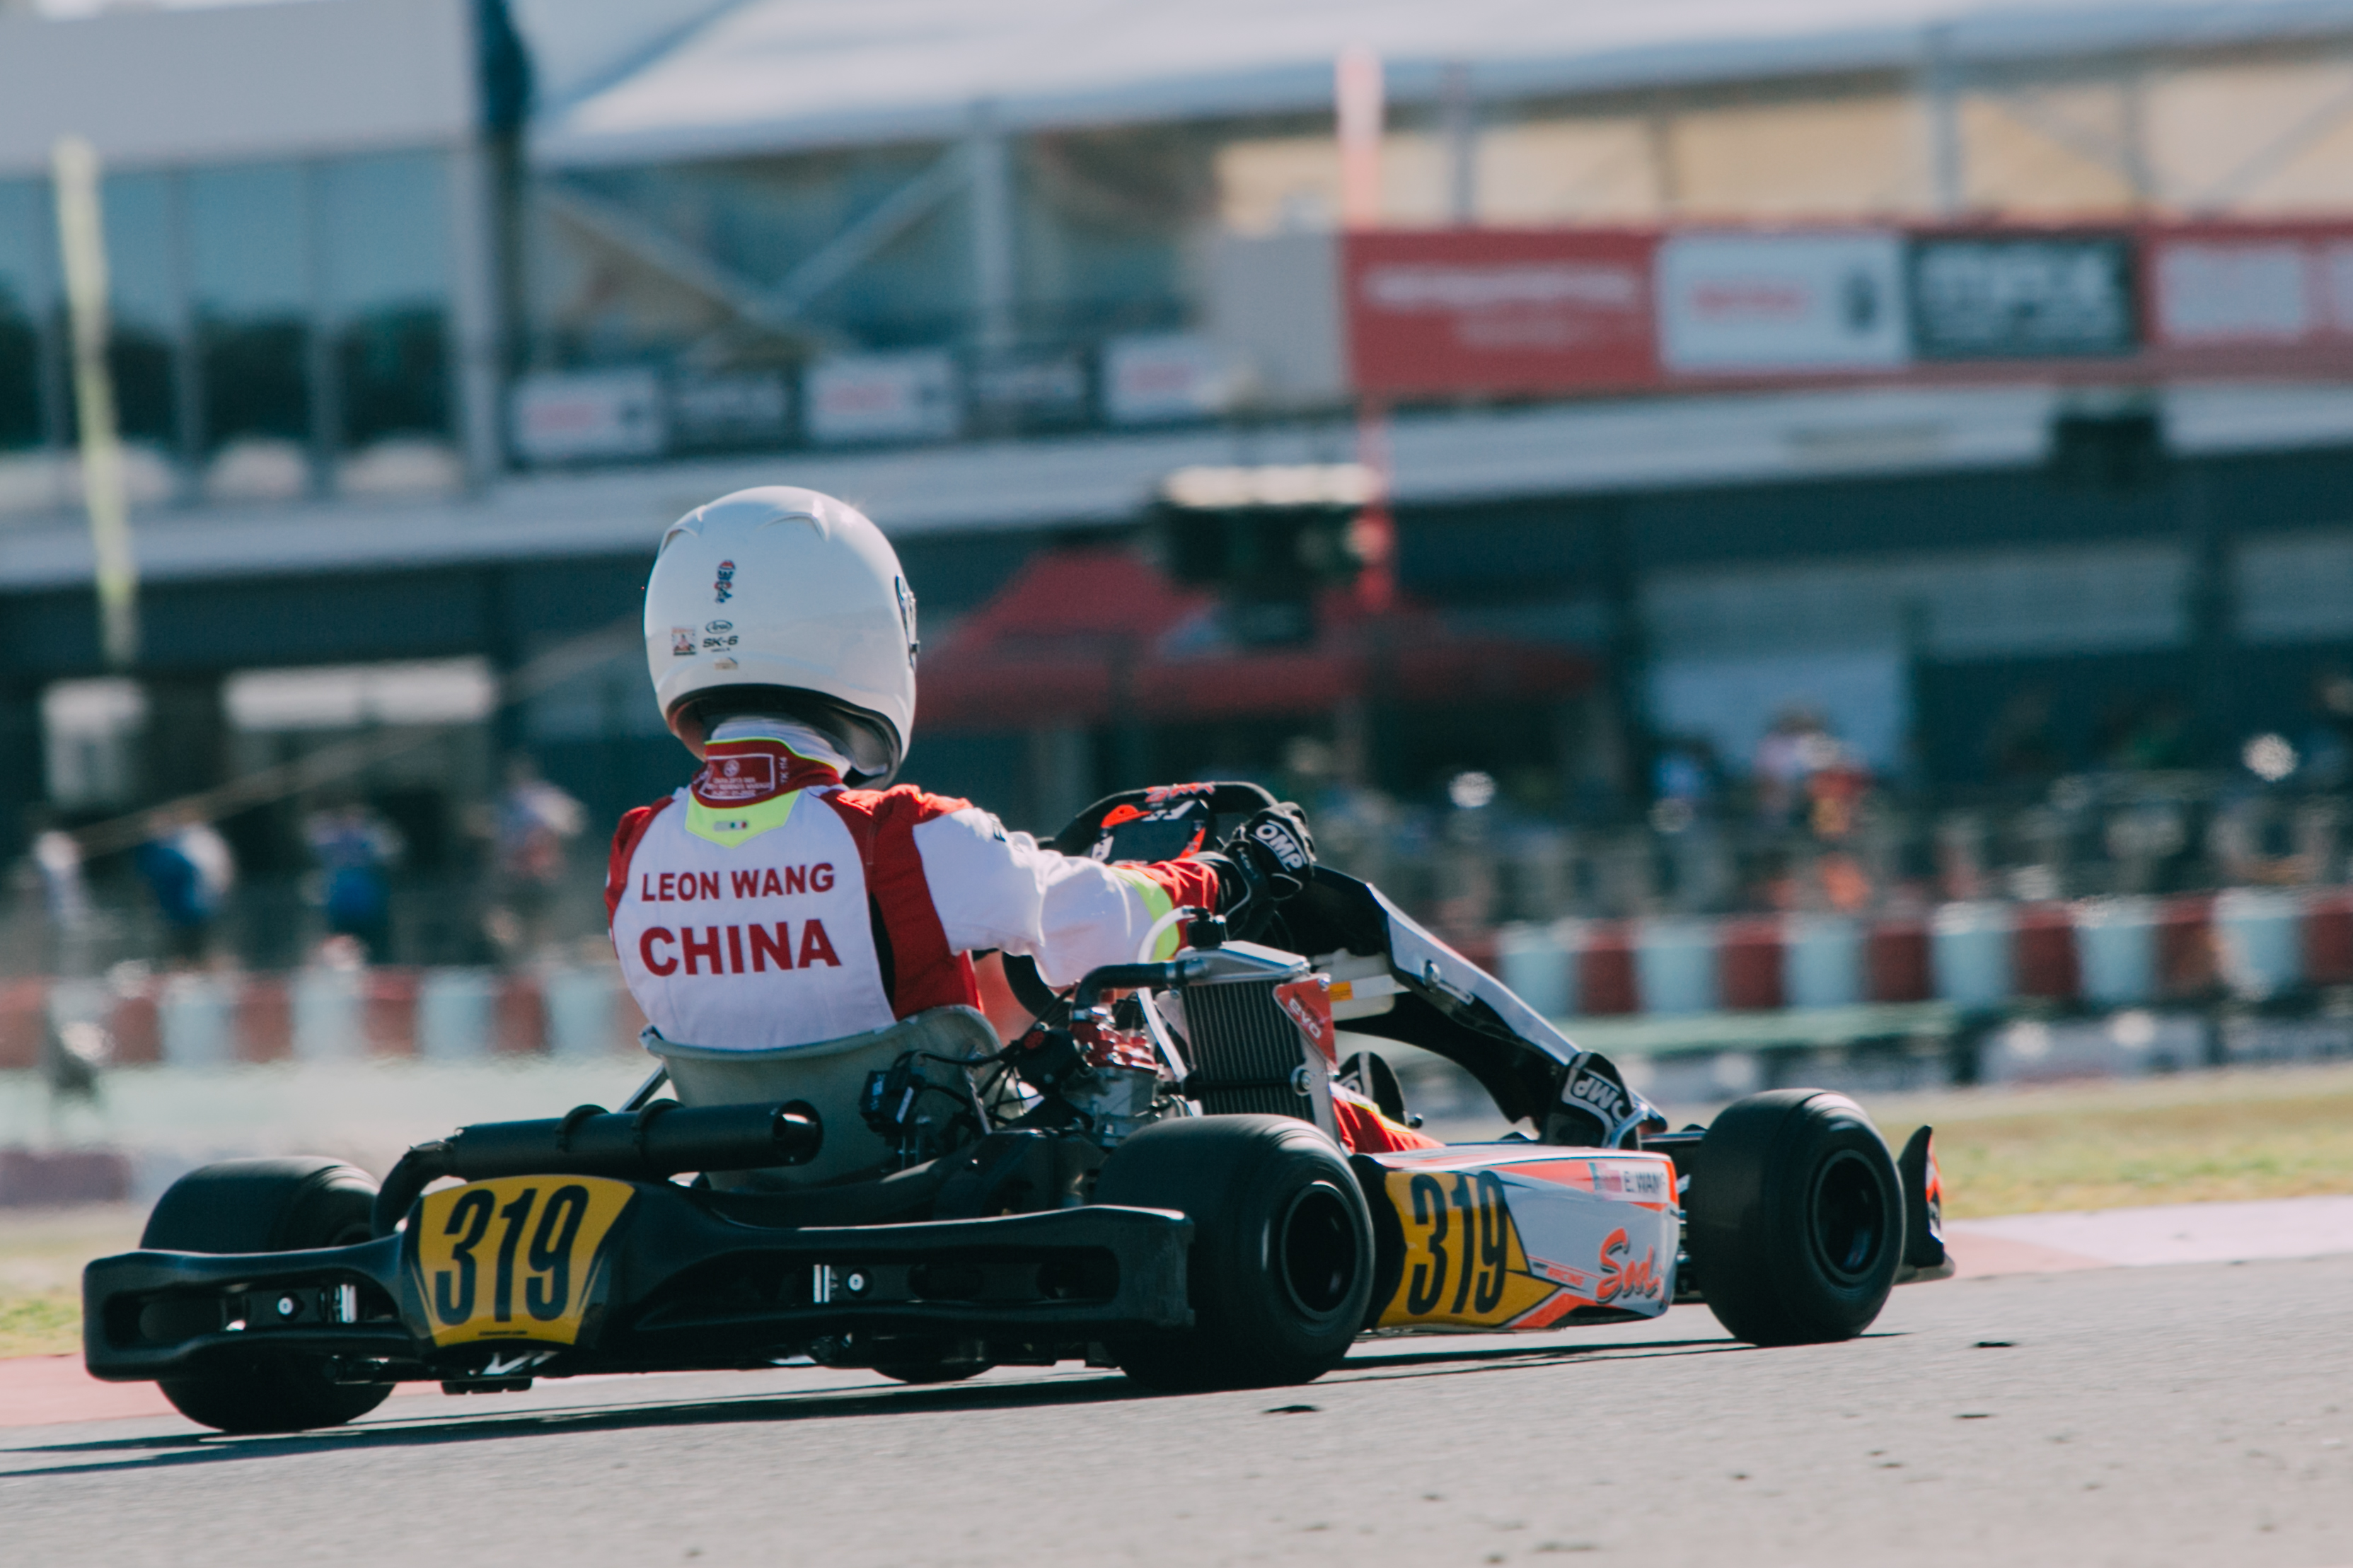 New Race Format With Races In China Taiwan And One Final Race In